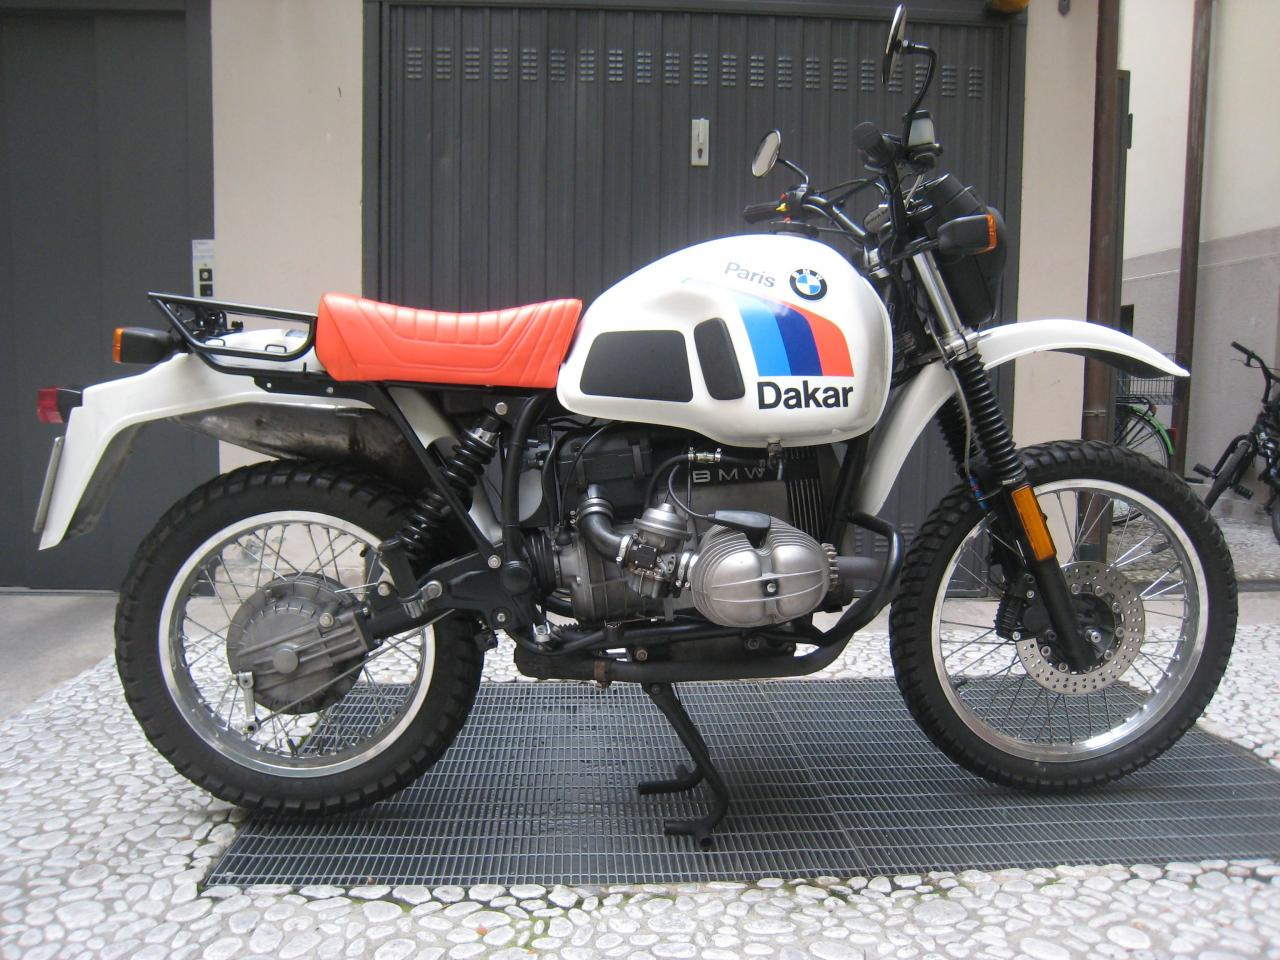 BMW R100GS Paris-Dakar 1994 images #7526